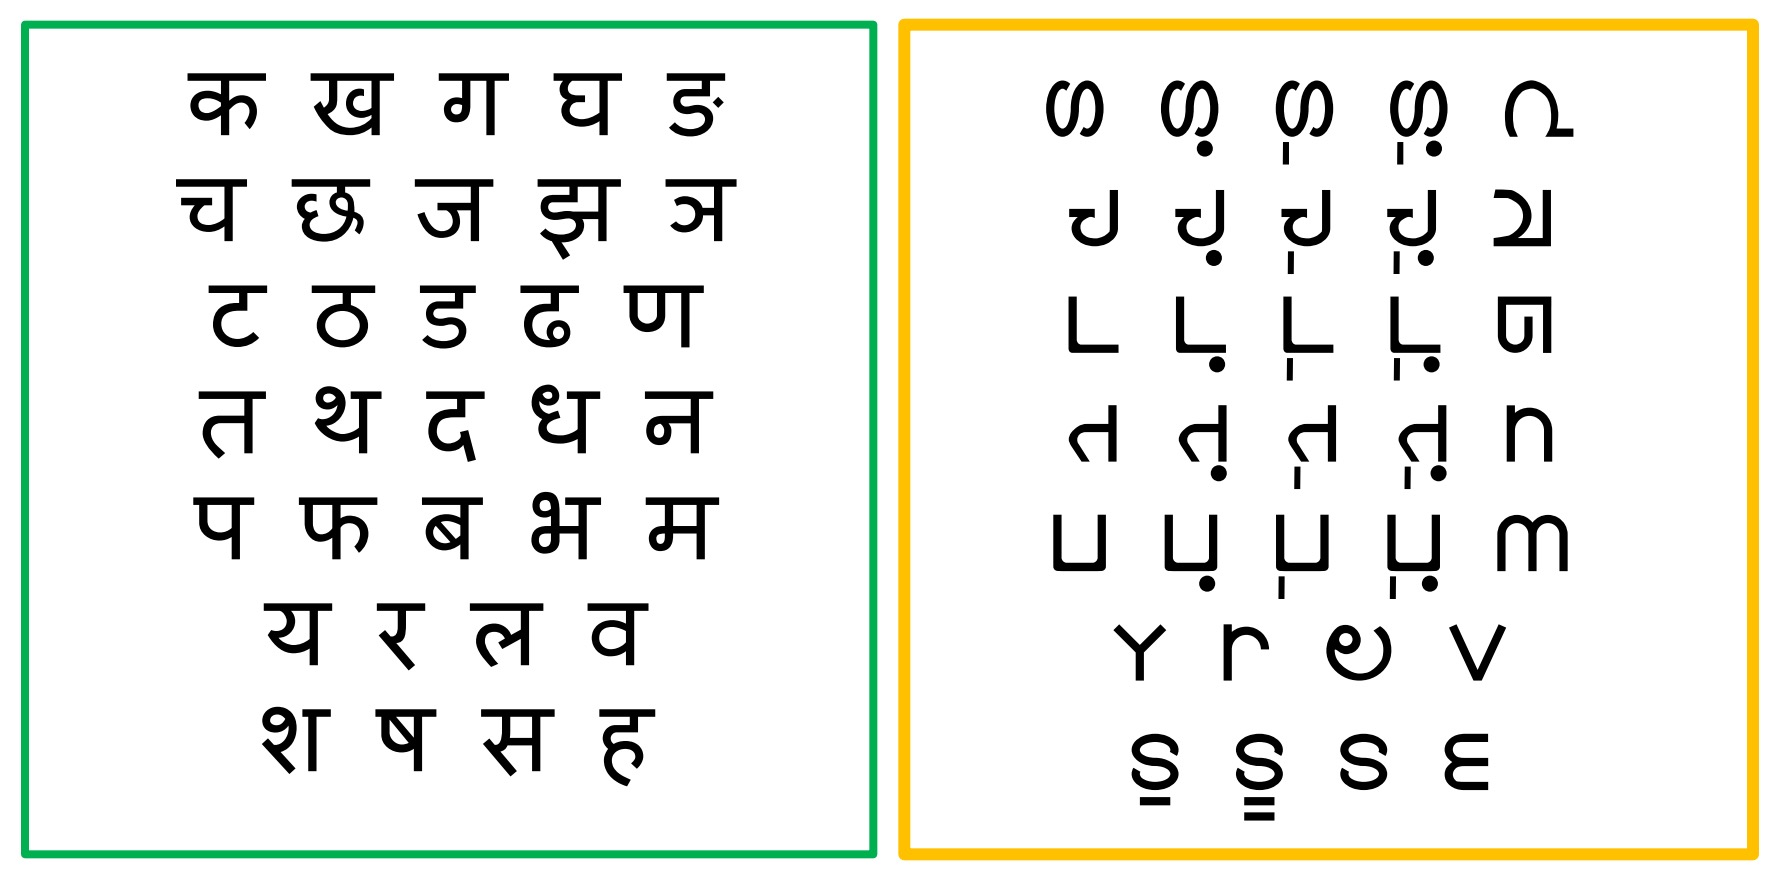 Notice how Bharati has tried to make characters across a phonetic row more consistent